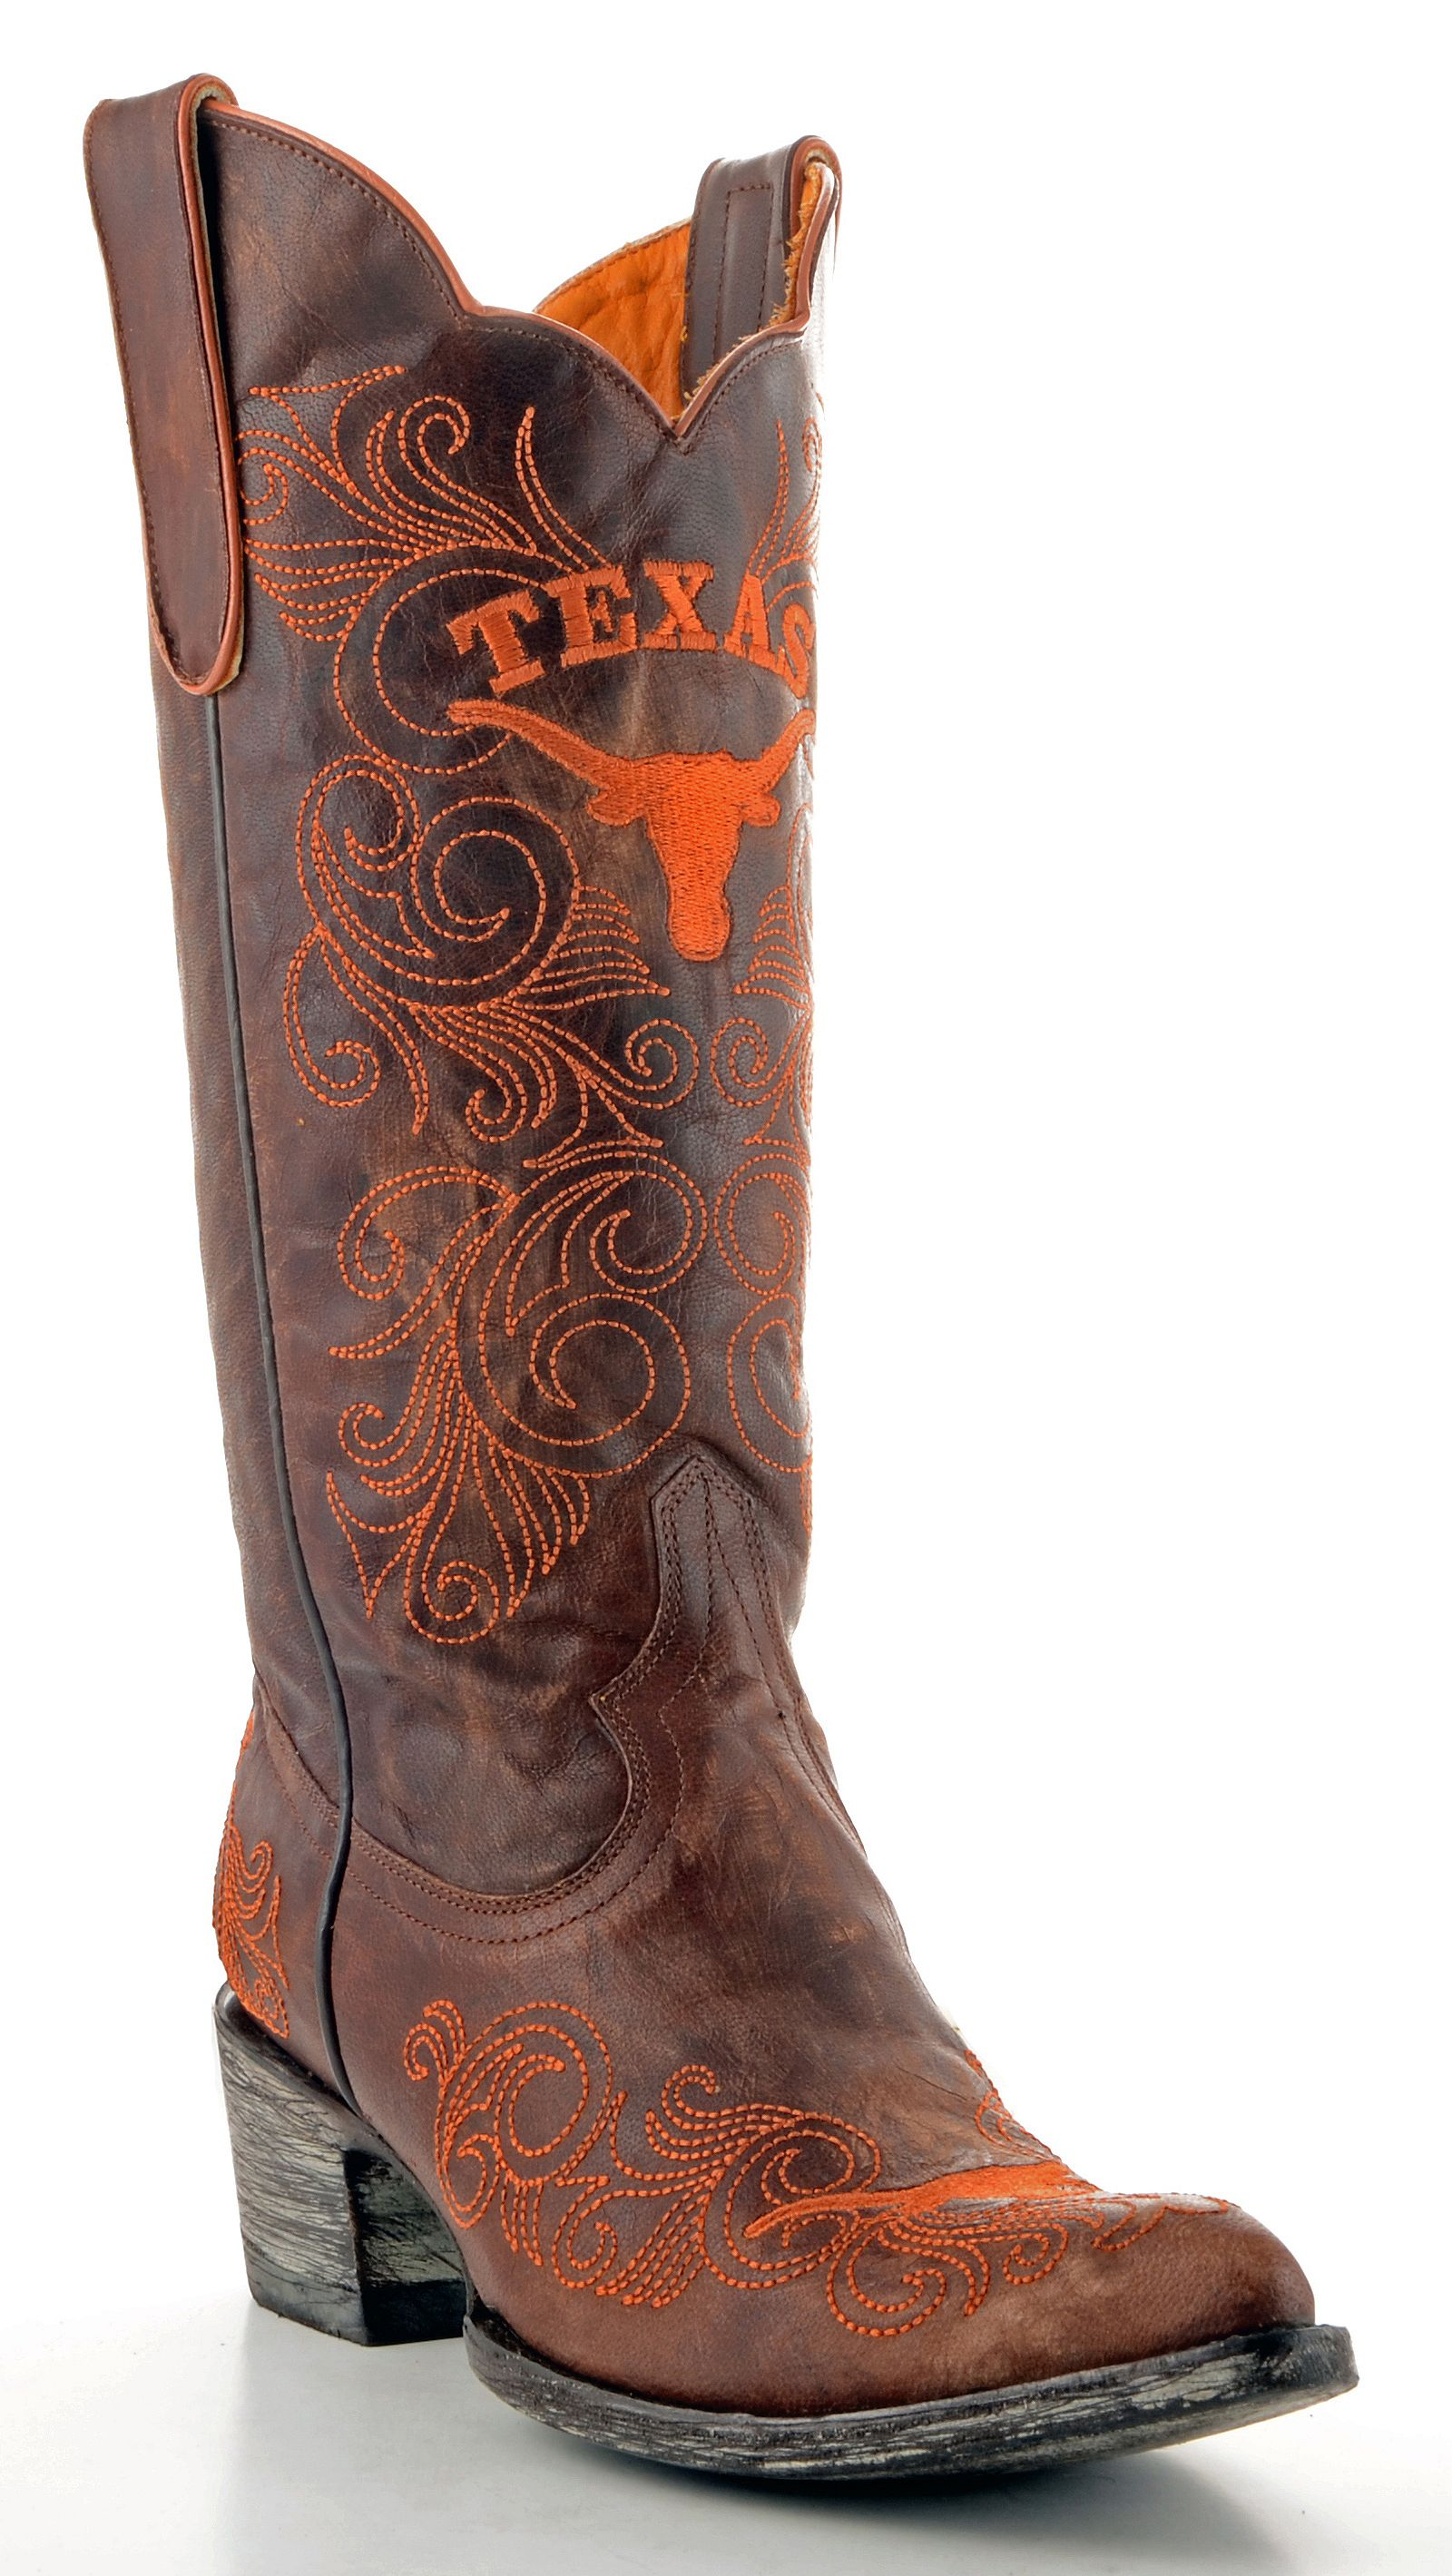 Gameday University Of Texas Cowgirl Boots Pointed Toe